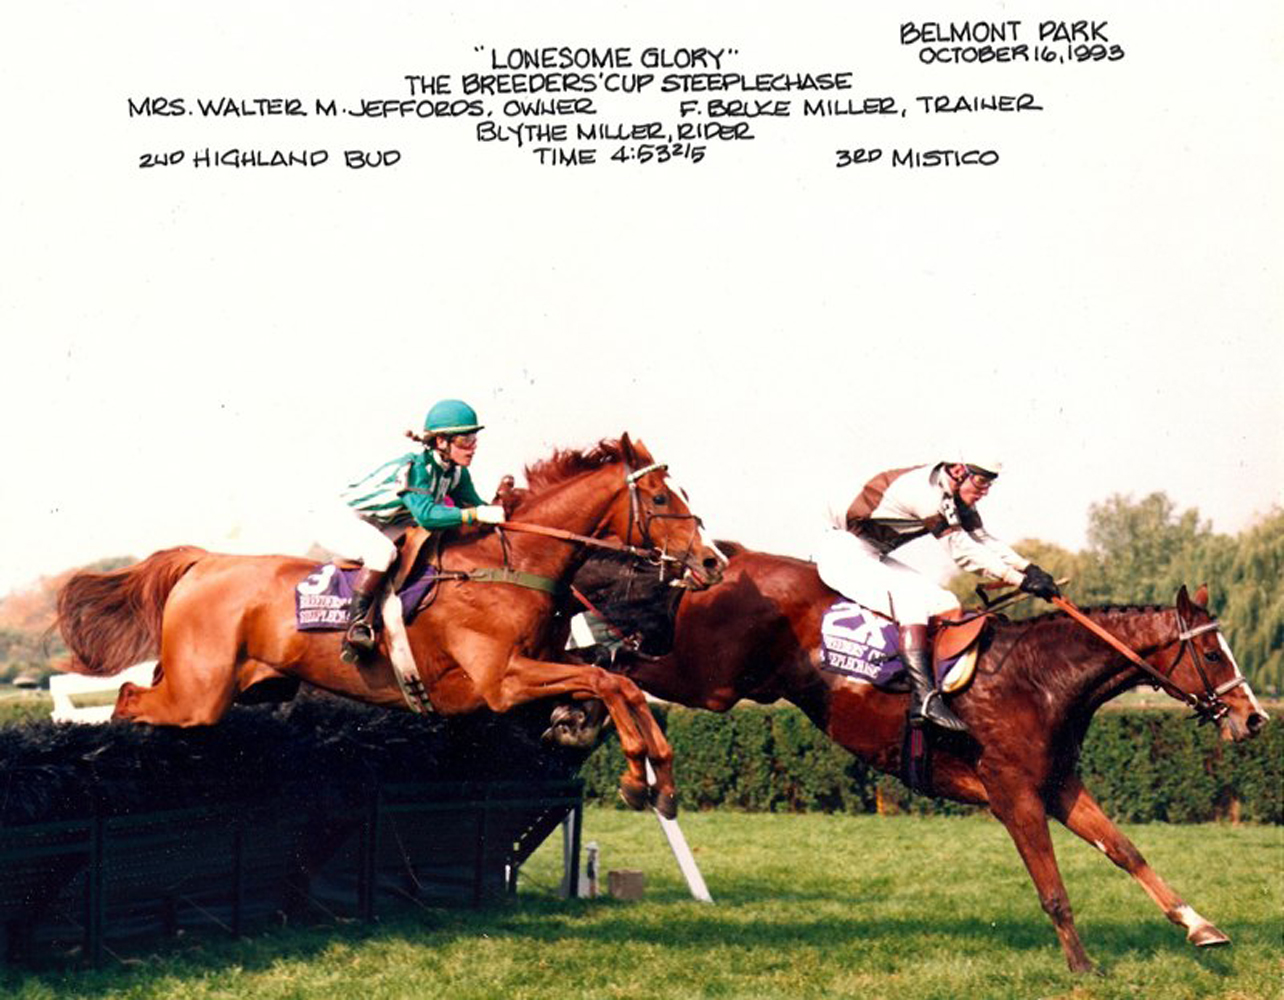 Lonesome Glory, Blythe Miller up, winning the 1993 Breeders' Cup Steeplechase (Courtesy of Bruce Miller)